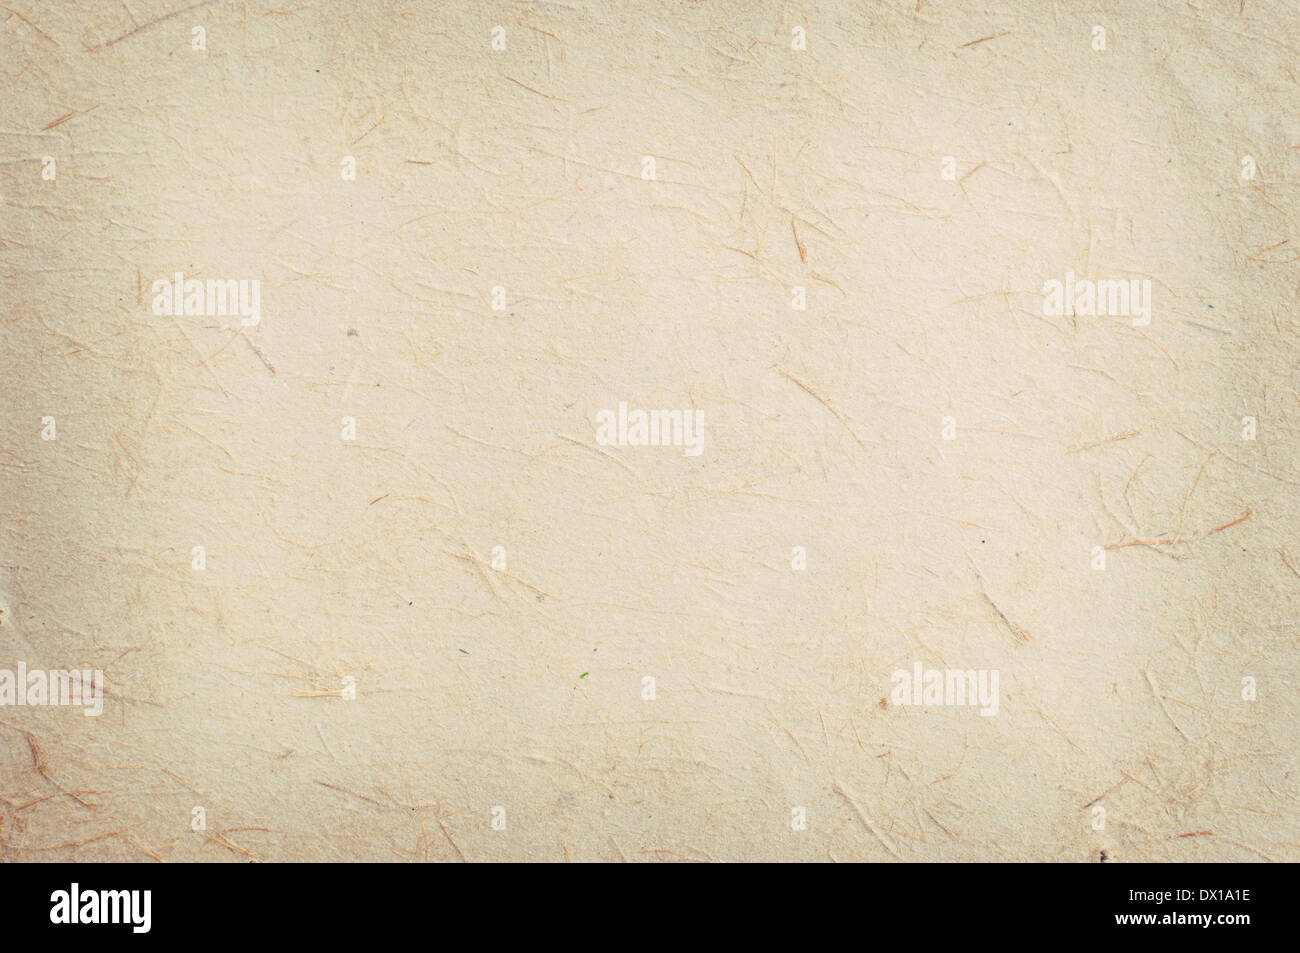 Sheet of old brown handmade paper - Stock Image